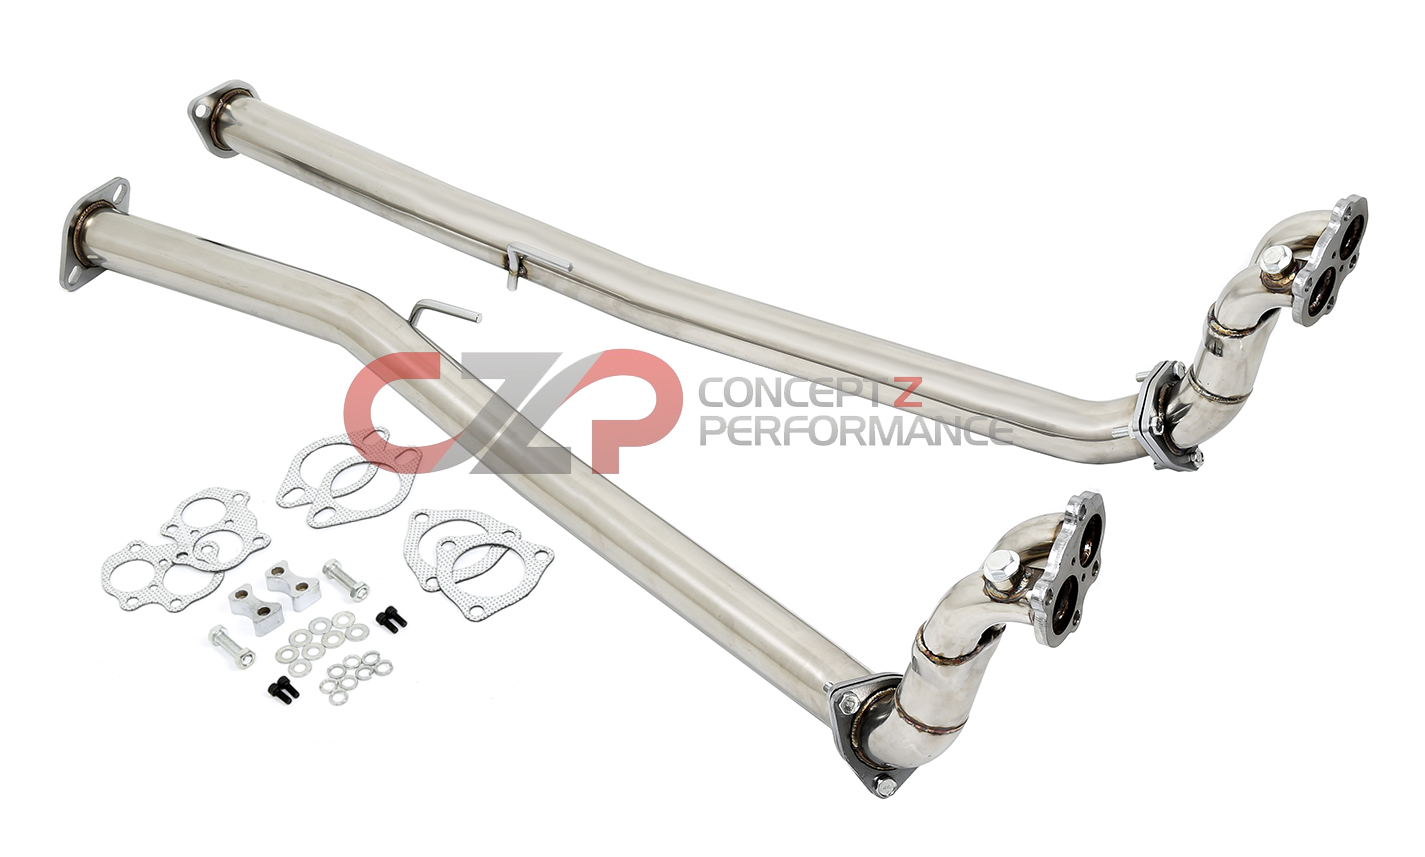 Dna 300zx Downpipe Test Pipe Set 60mm 90 96 Z32 Tp 117